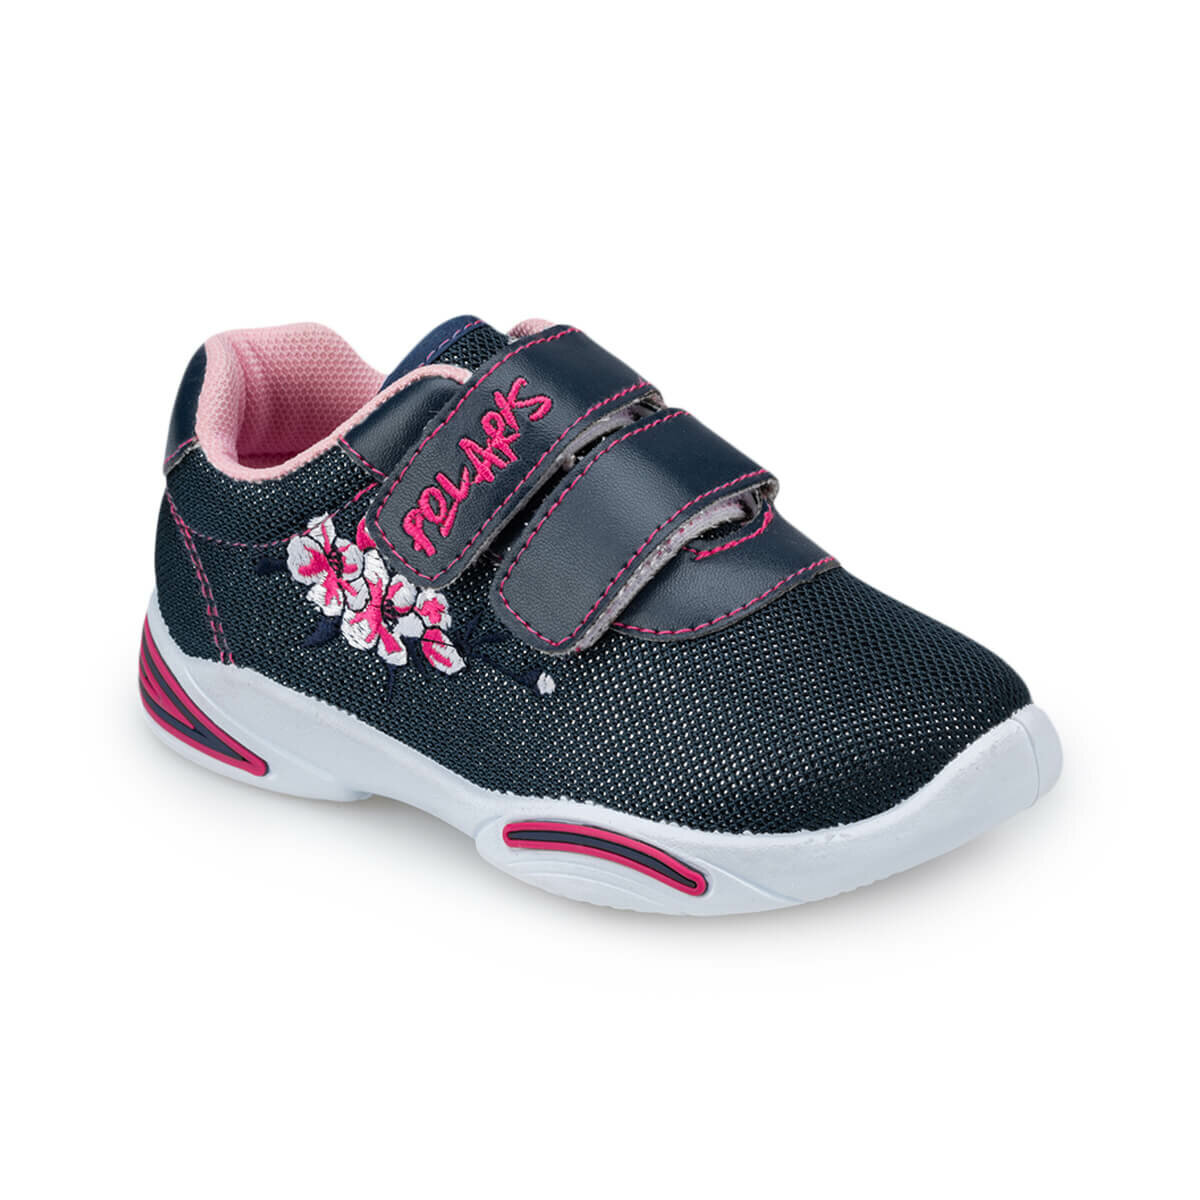 FLO 91.511143.P Navy Blue Female Child Shoes Polaris